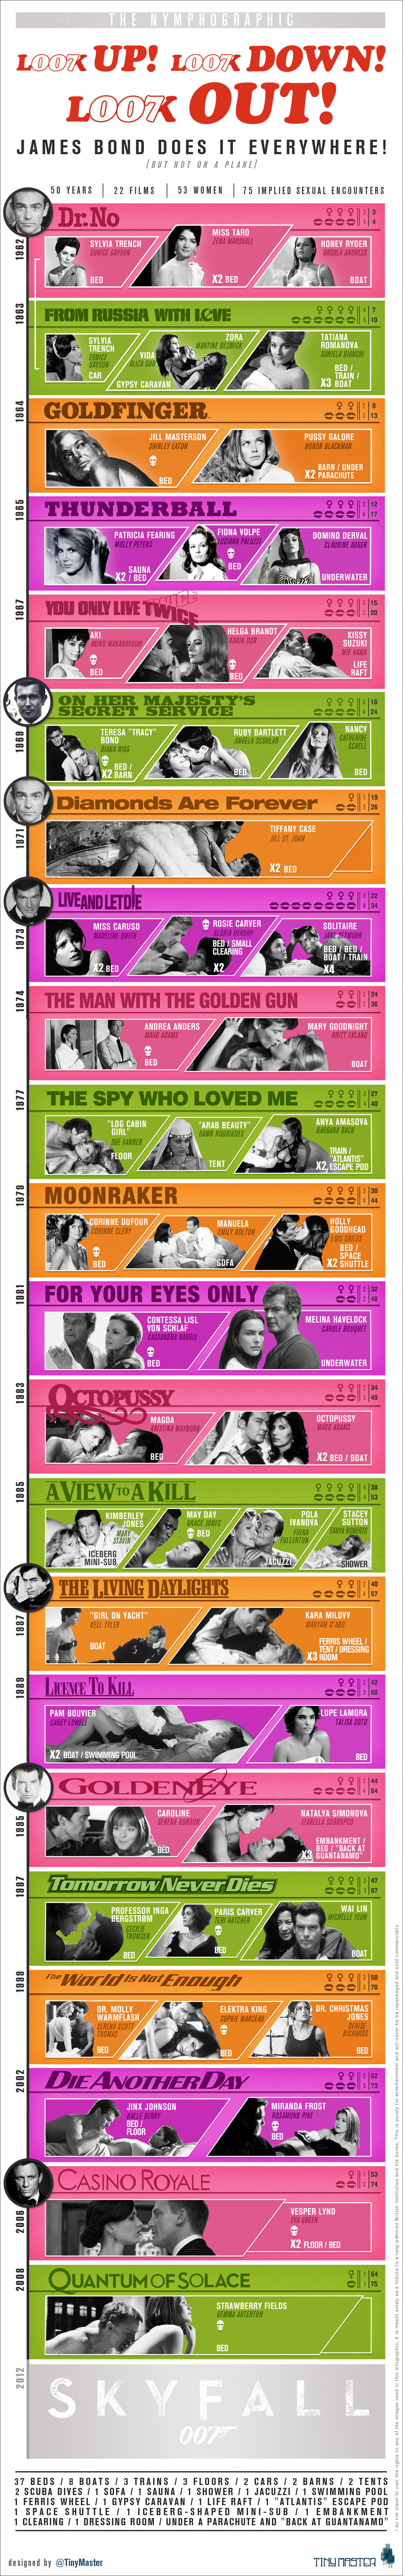 A chronological visualisation of 50 years worth of cinematic sexual exploits and the settings in which they took place.